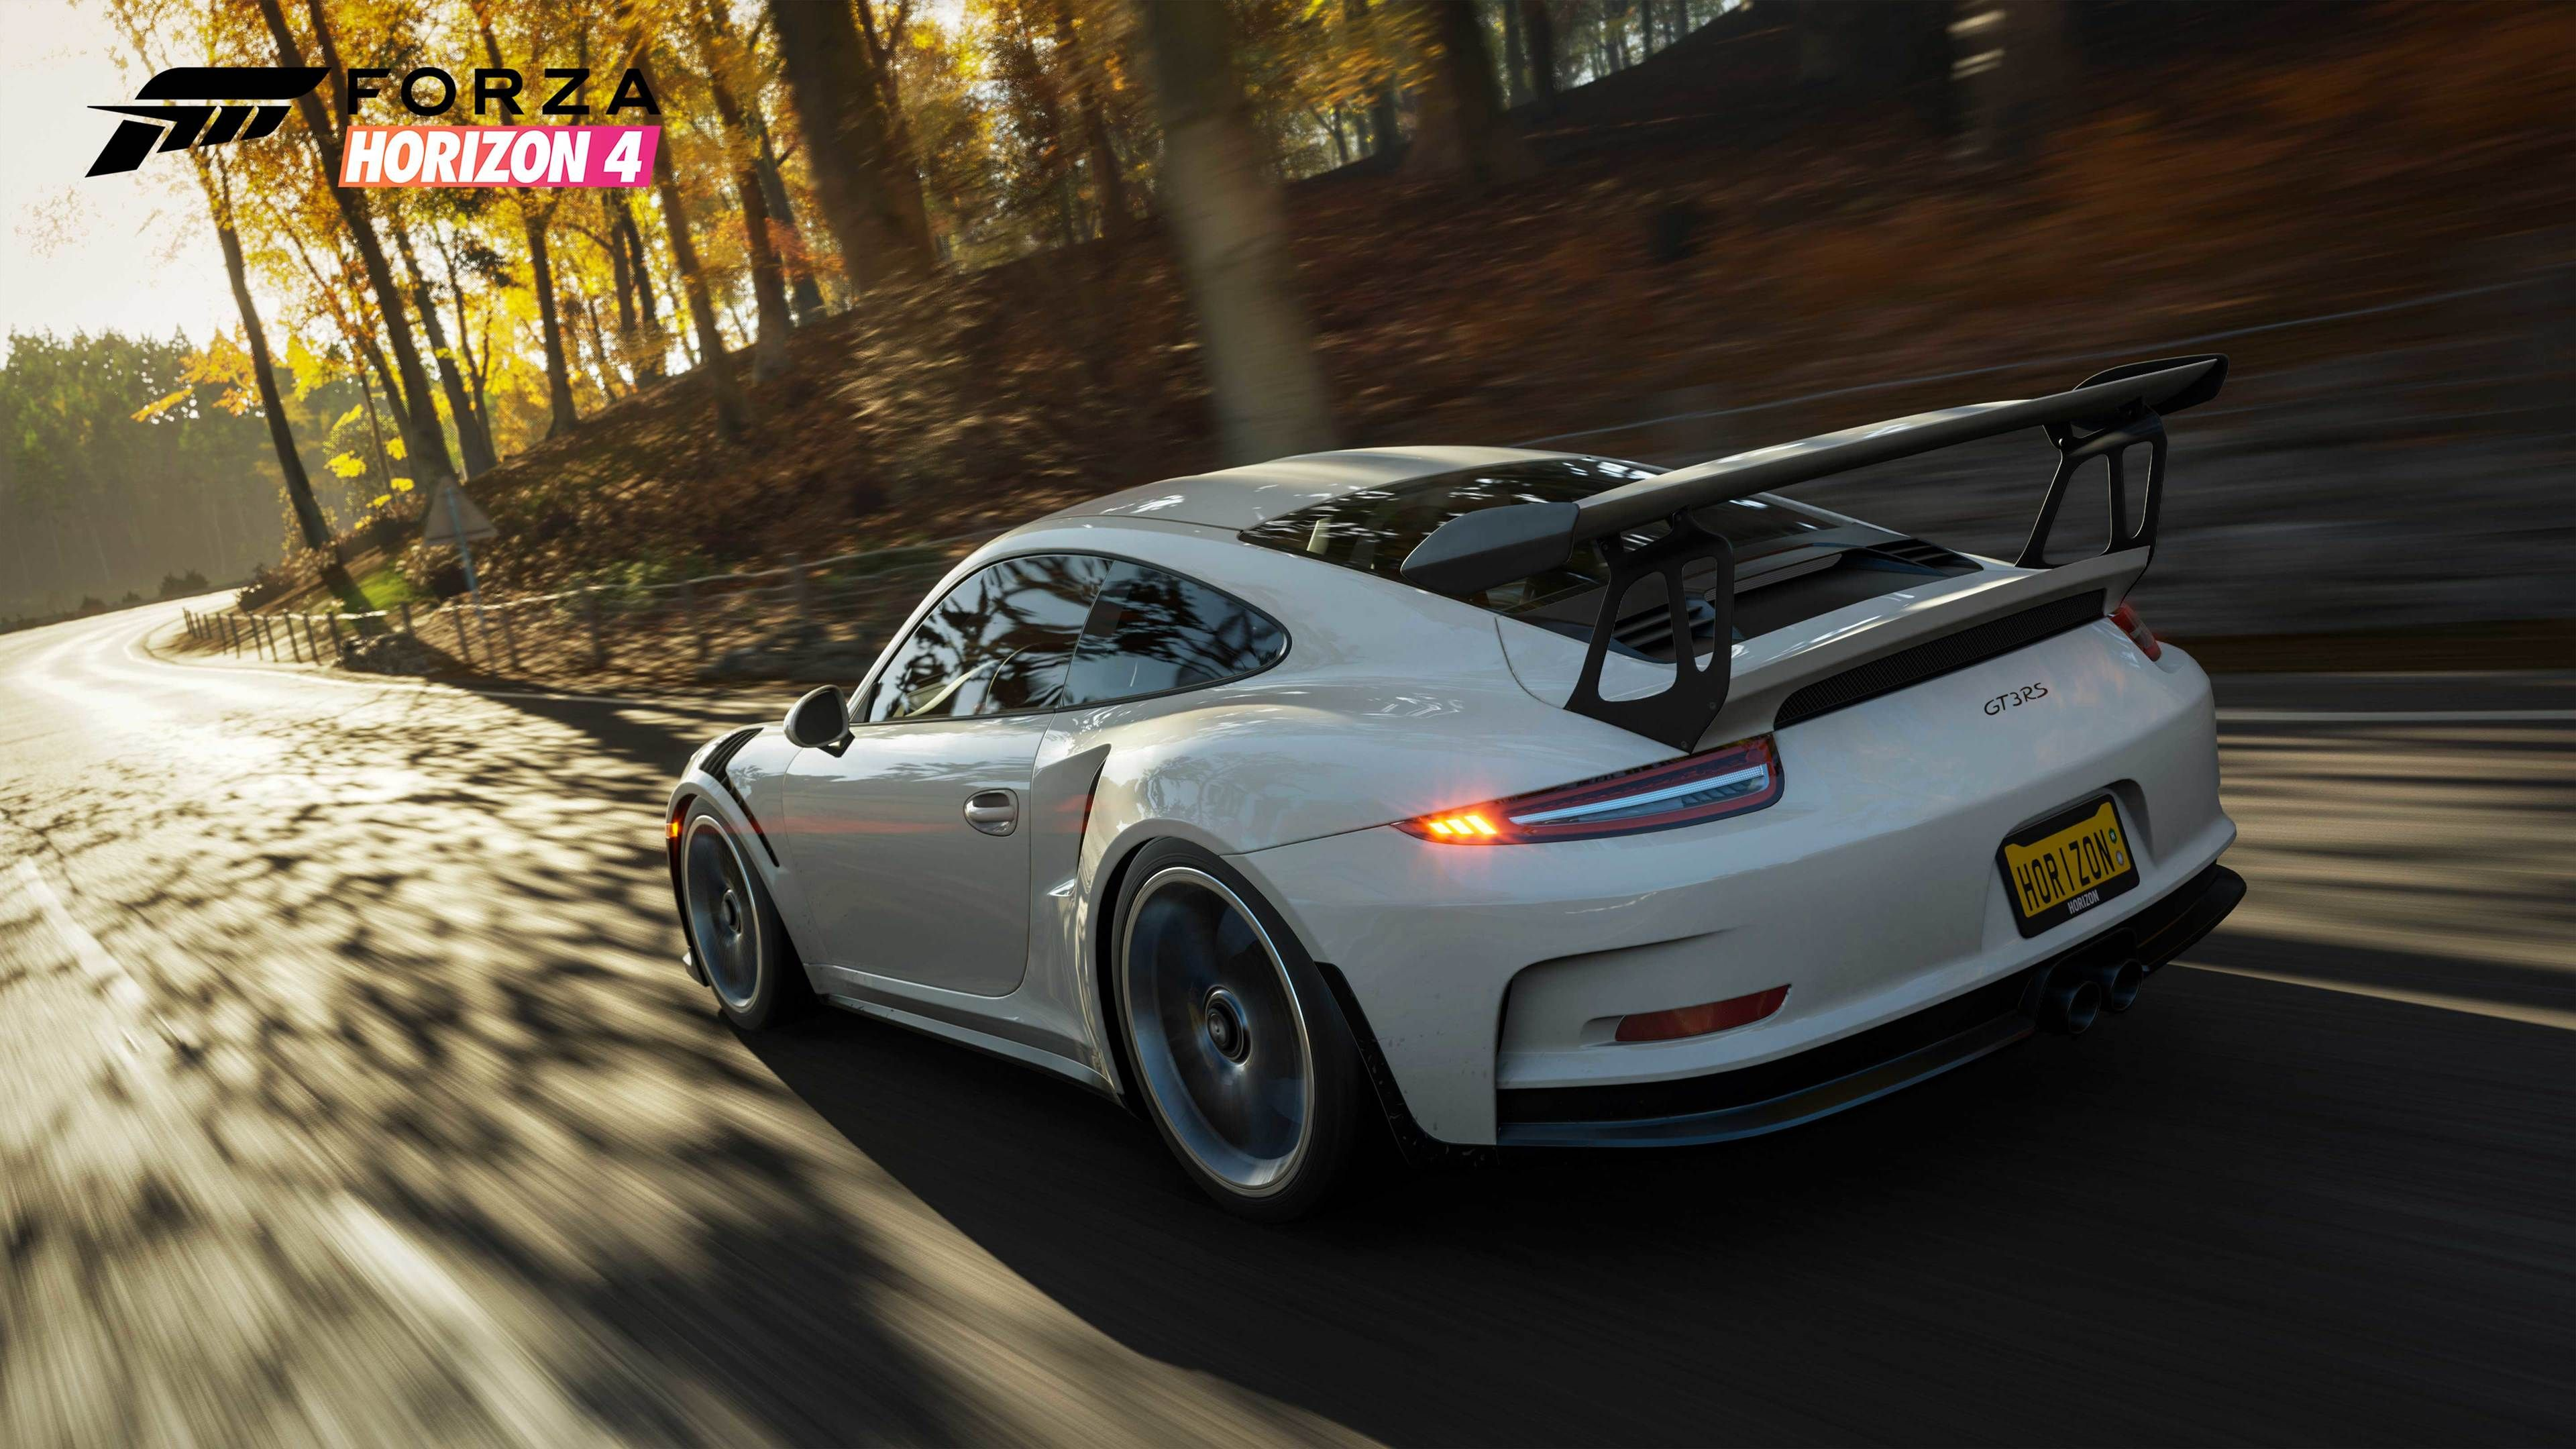 Forza Horizon 4 Gt3 Rs 5k Porsche Wallpapers Hd Wallpapers Games Wallpapers Forza Wallpapers Forza Horizon 4 Wallpa Cool Cars Forza Horizon 4 Forza Horizon